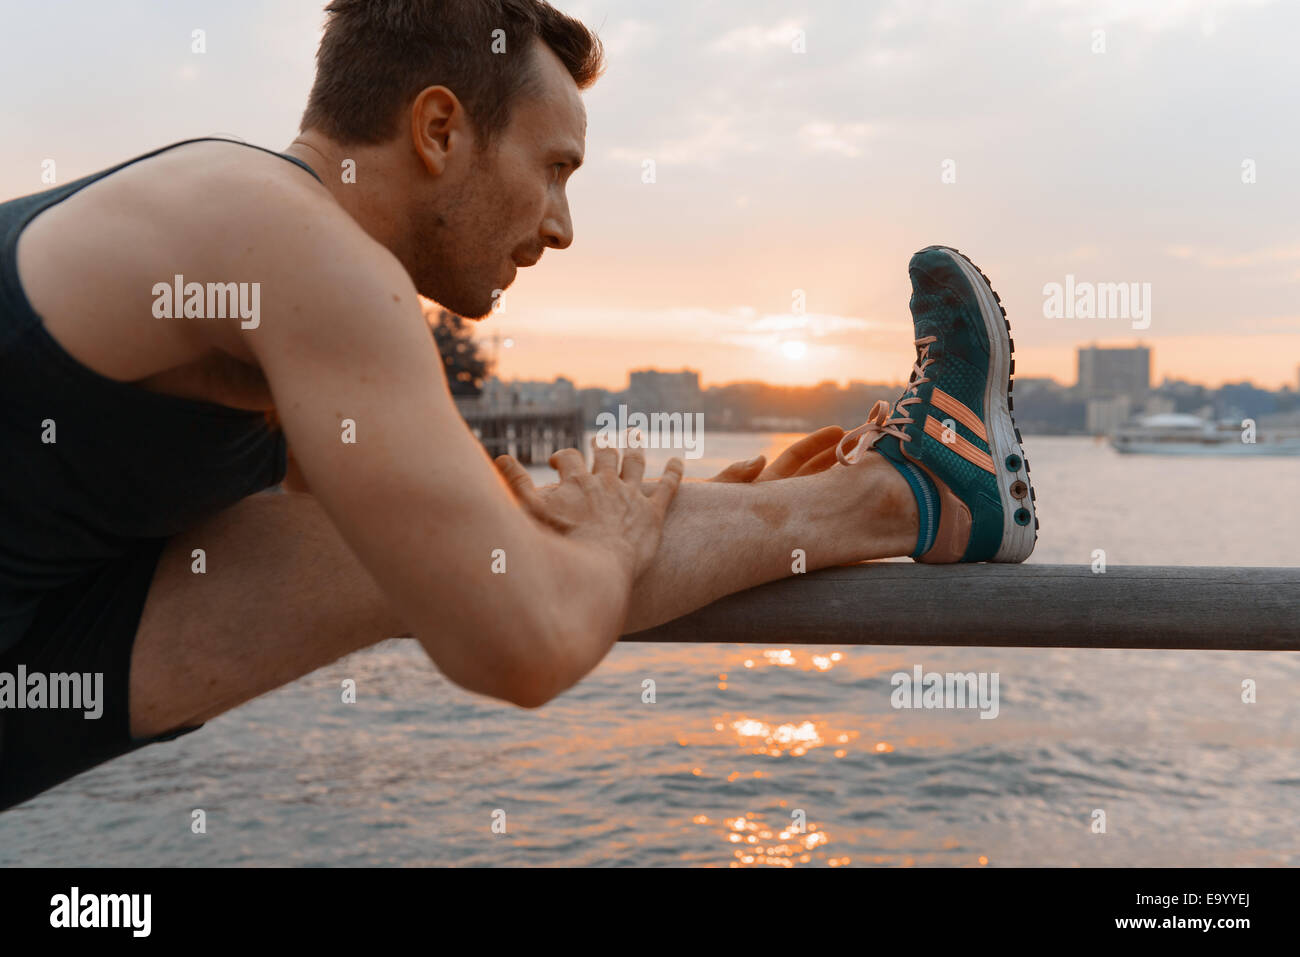 Young man touching toes on riverside railings at sunrise - Stock Image